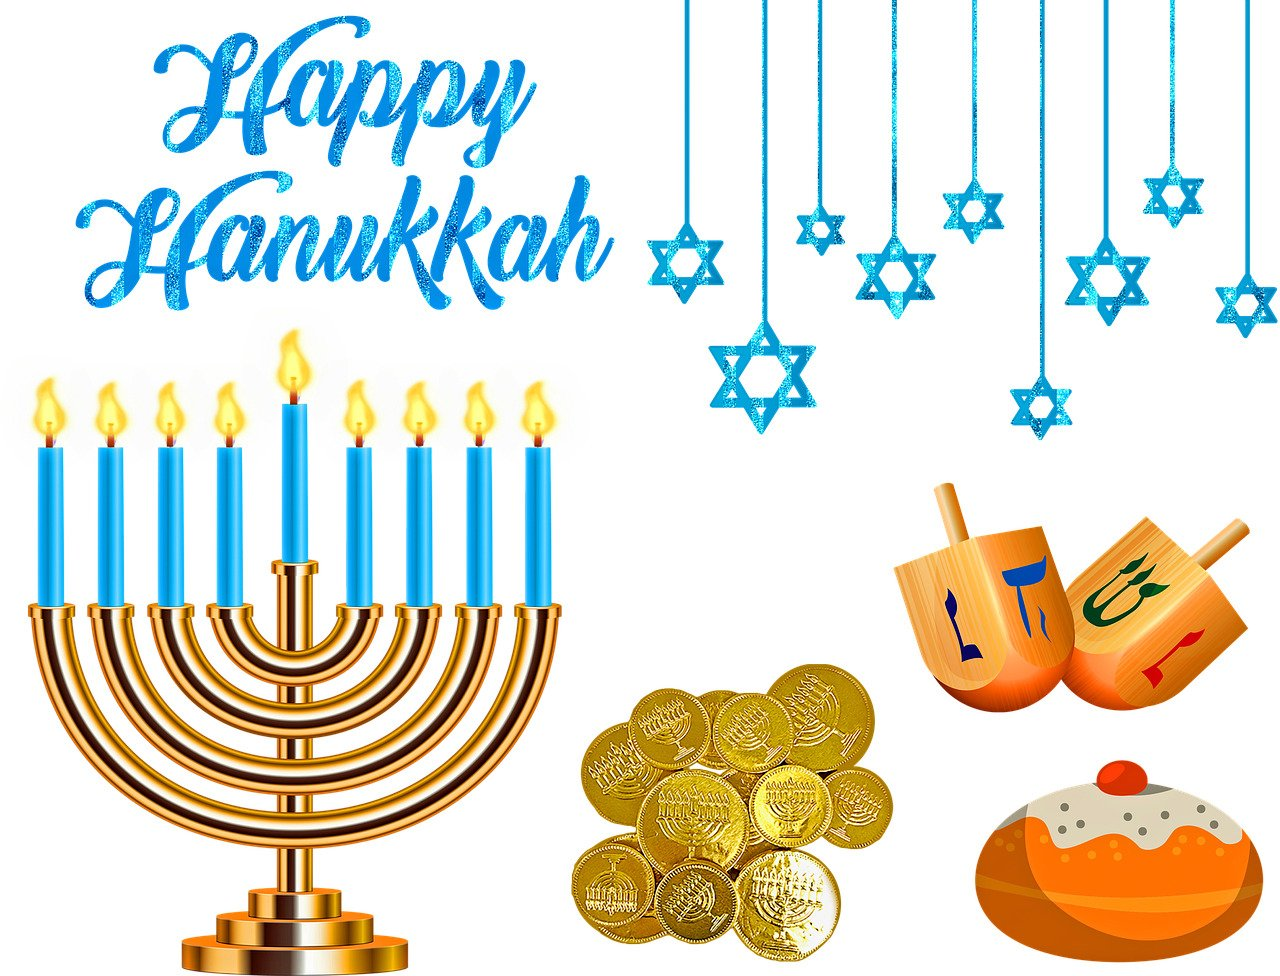 Hanukkah, The Jewish Festival Of Lights, Begins On December 22!